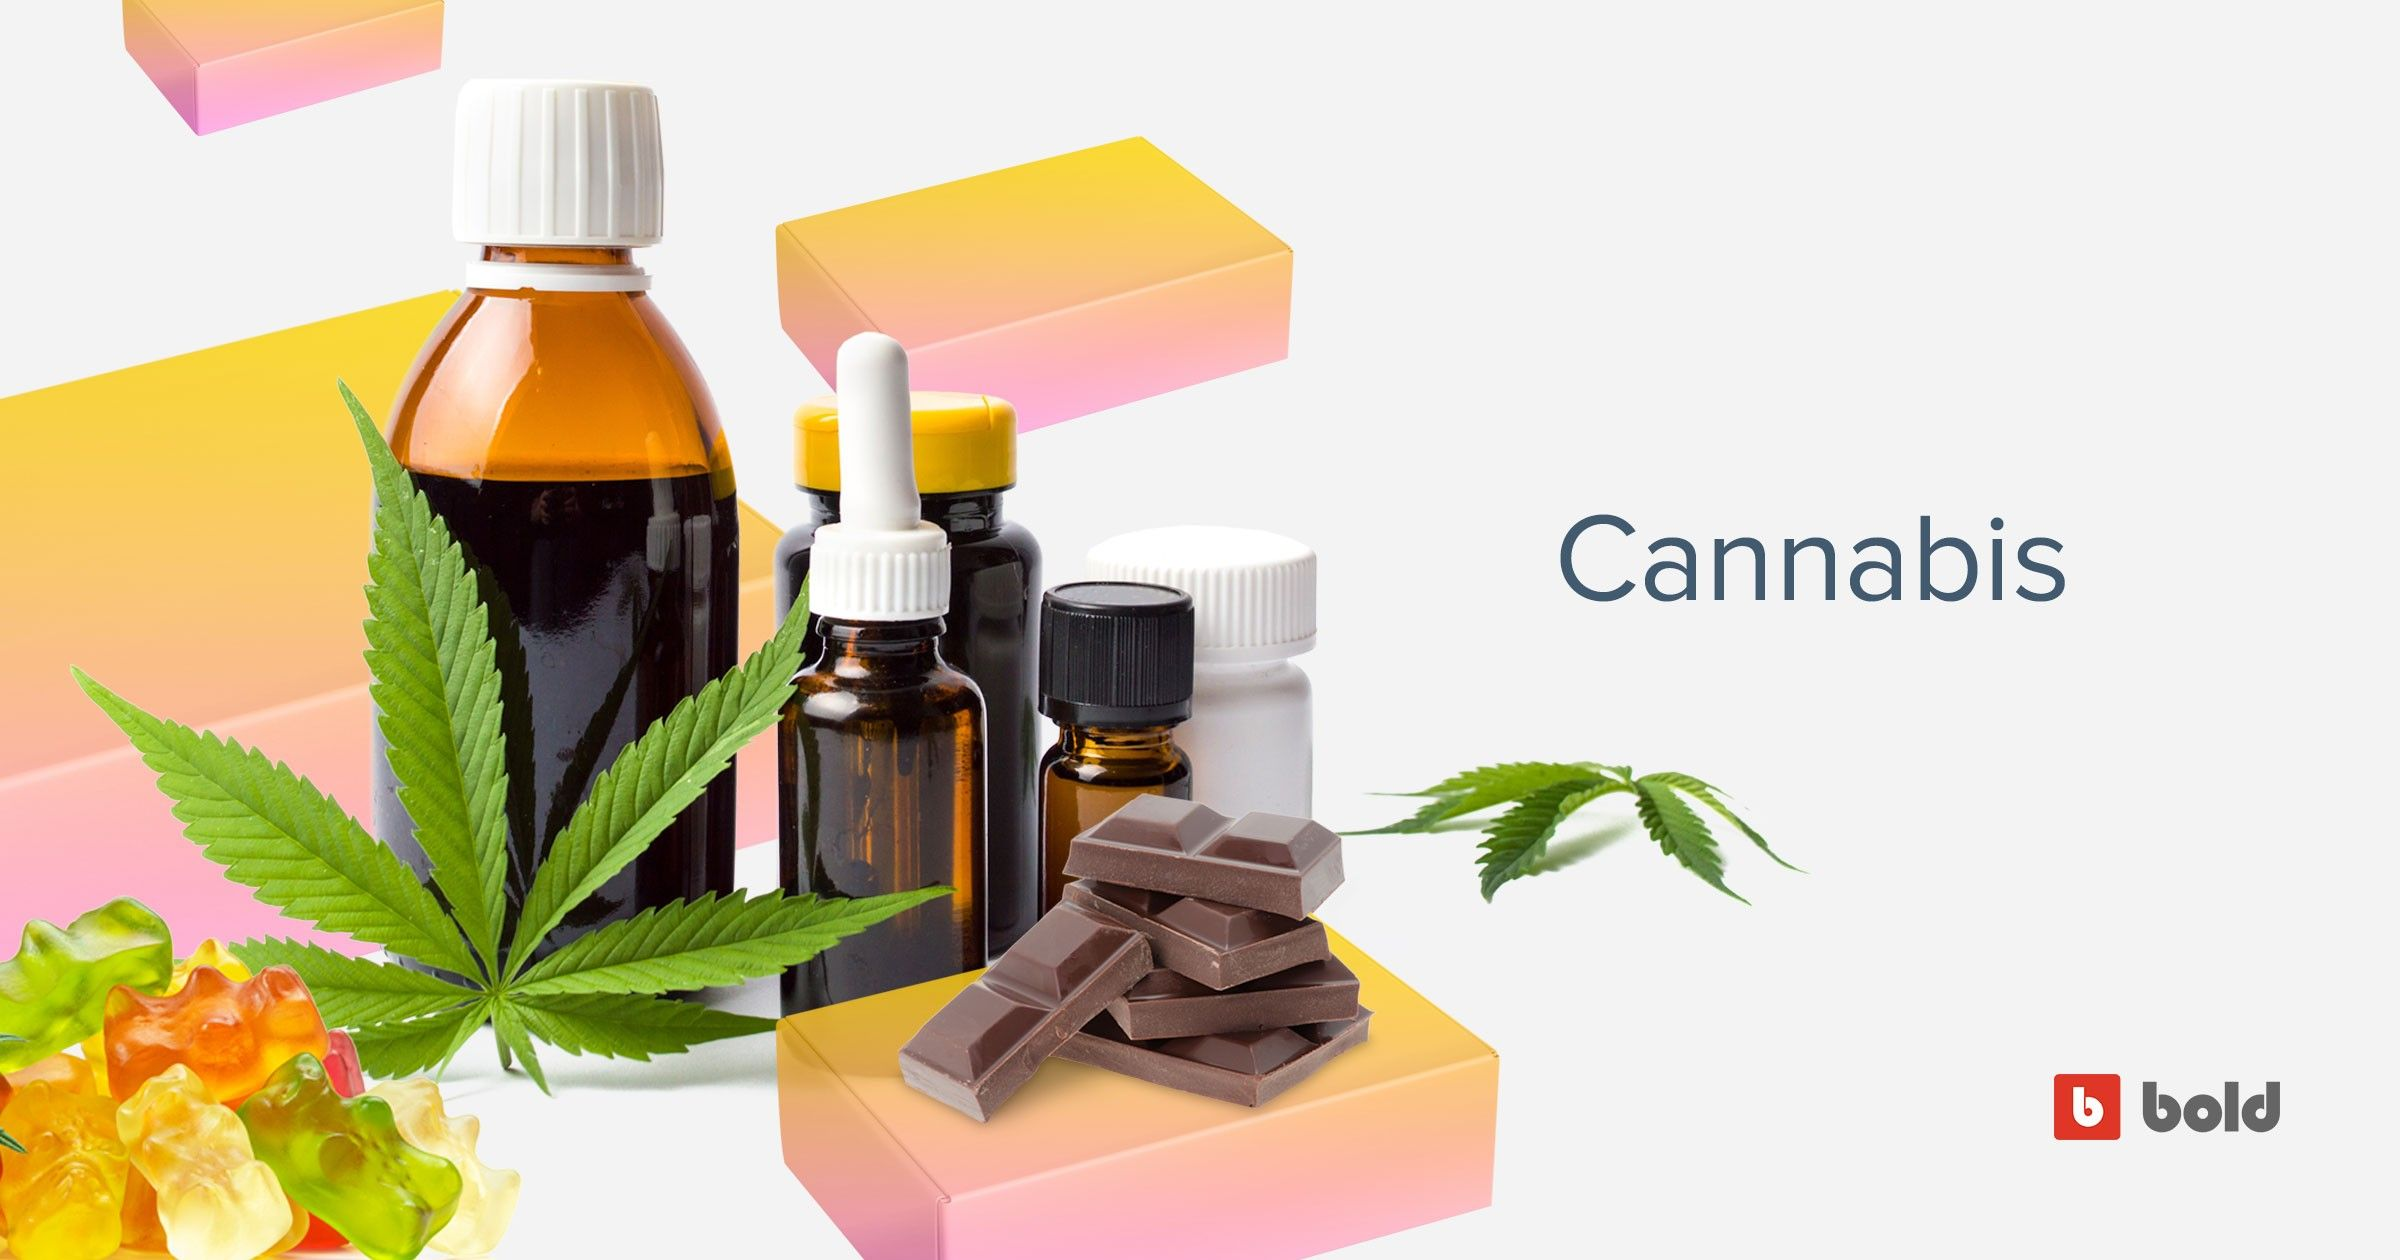 Blog banner showing cannabis products